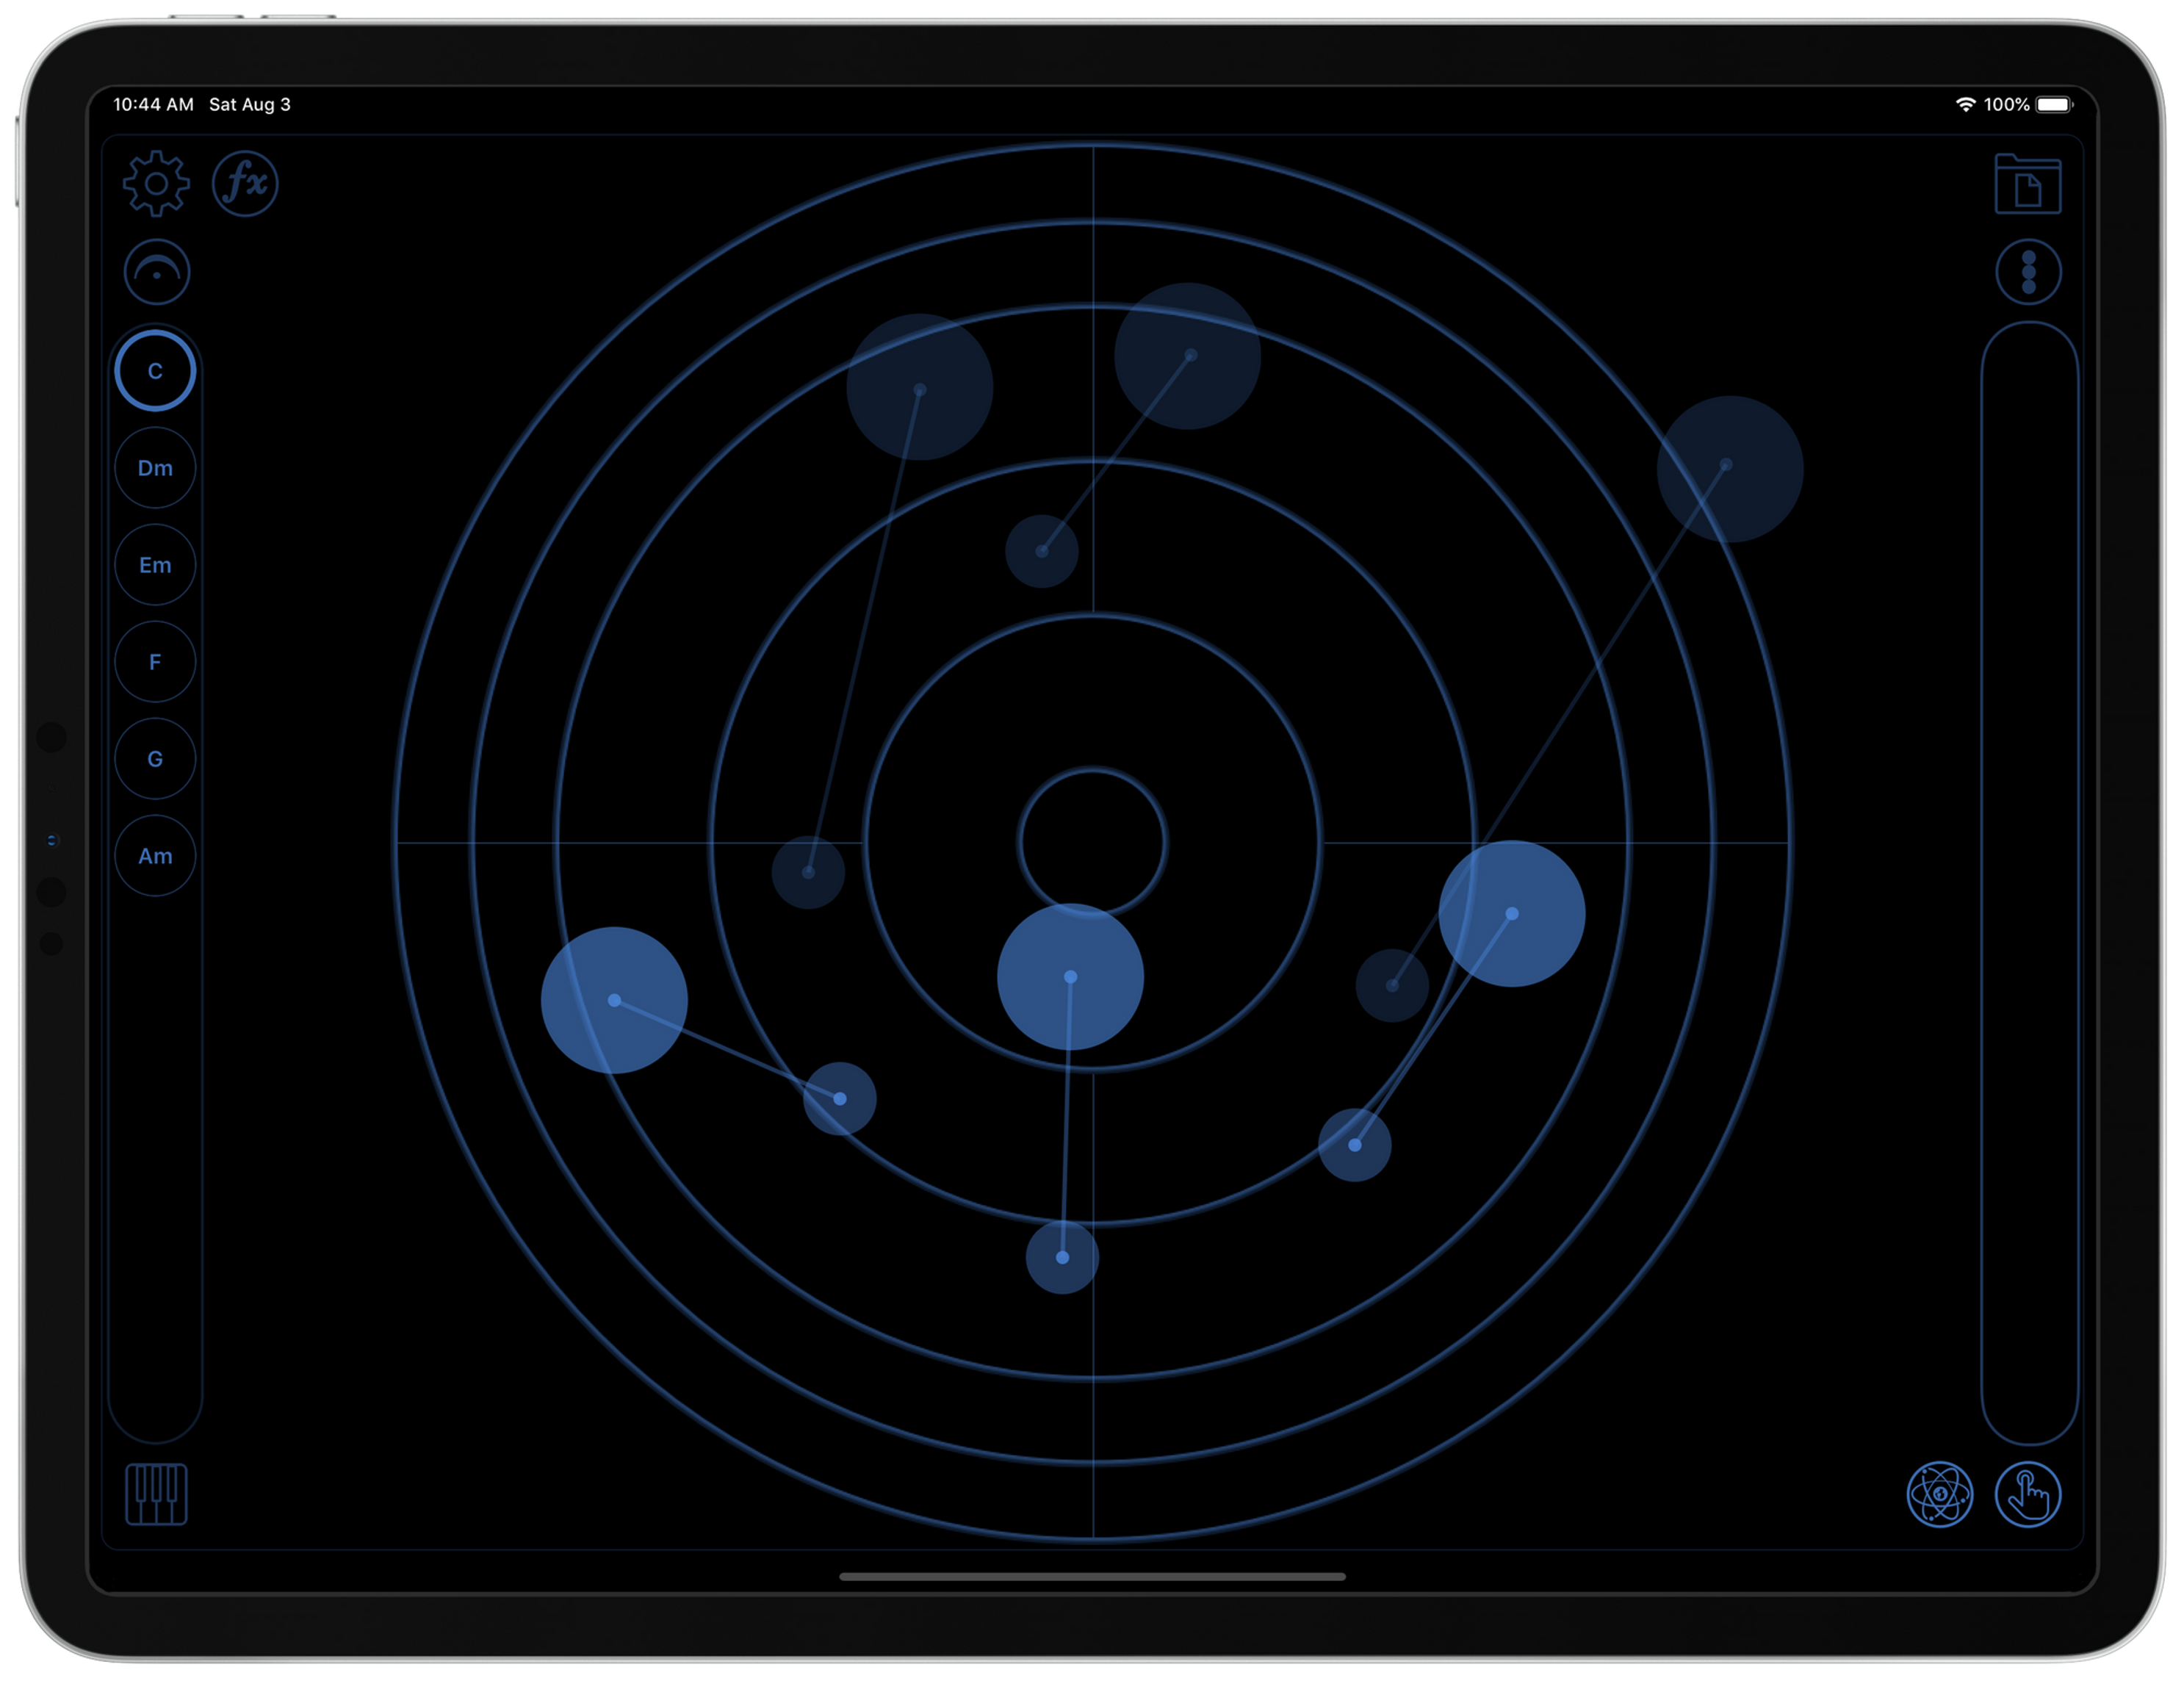 touchscaper - a touchable instrument for iOS